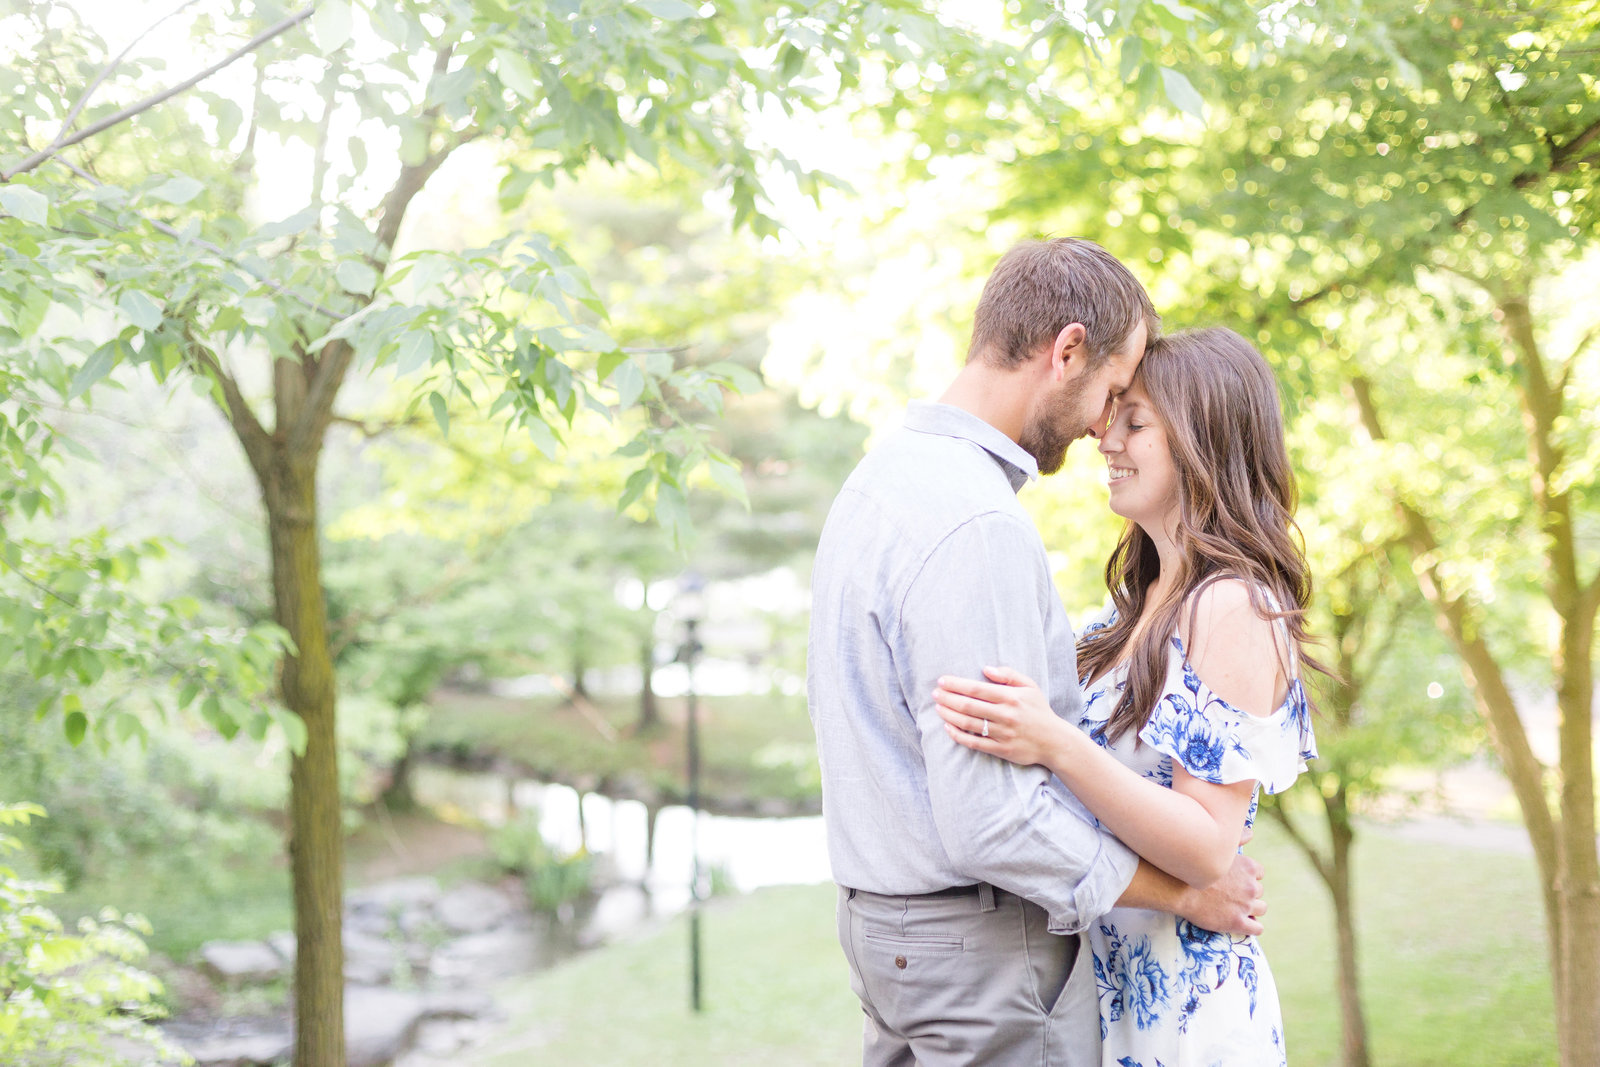 Orlando-Florida-Engagement-chris-and-micaela-Photography-15